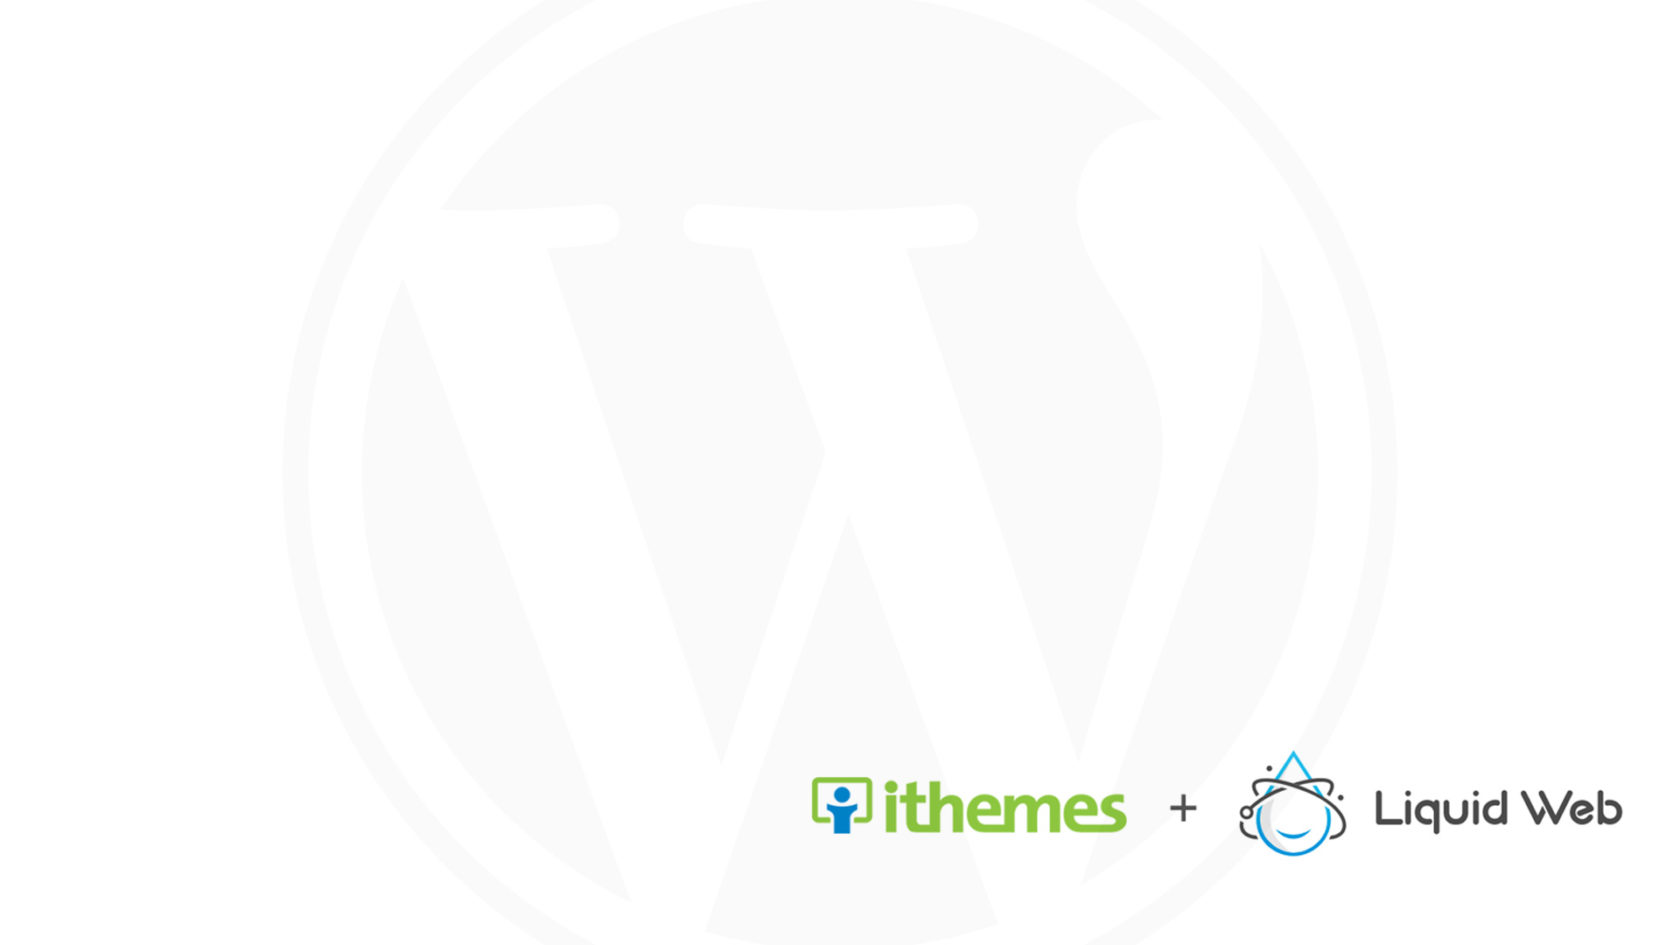 Liquid Web Acquires iThemes — A Great End to A New Beginning!